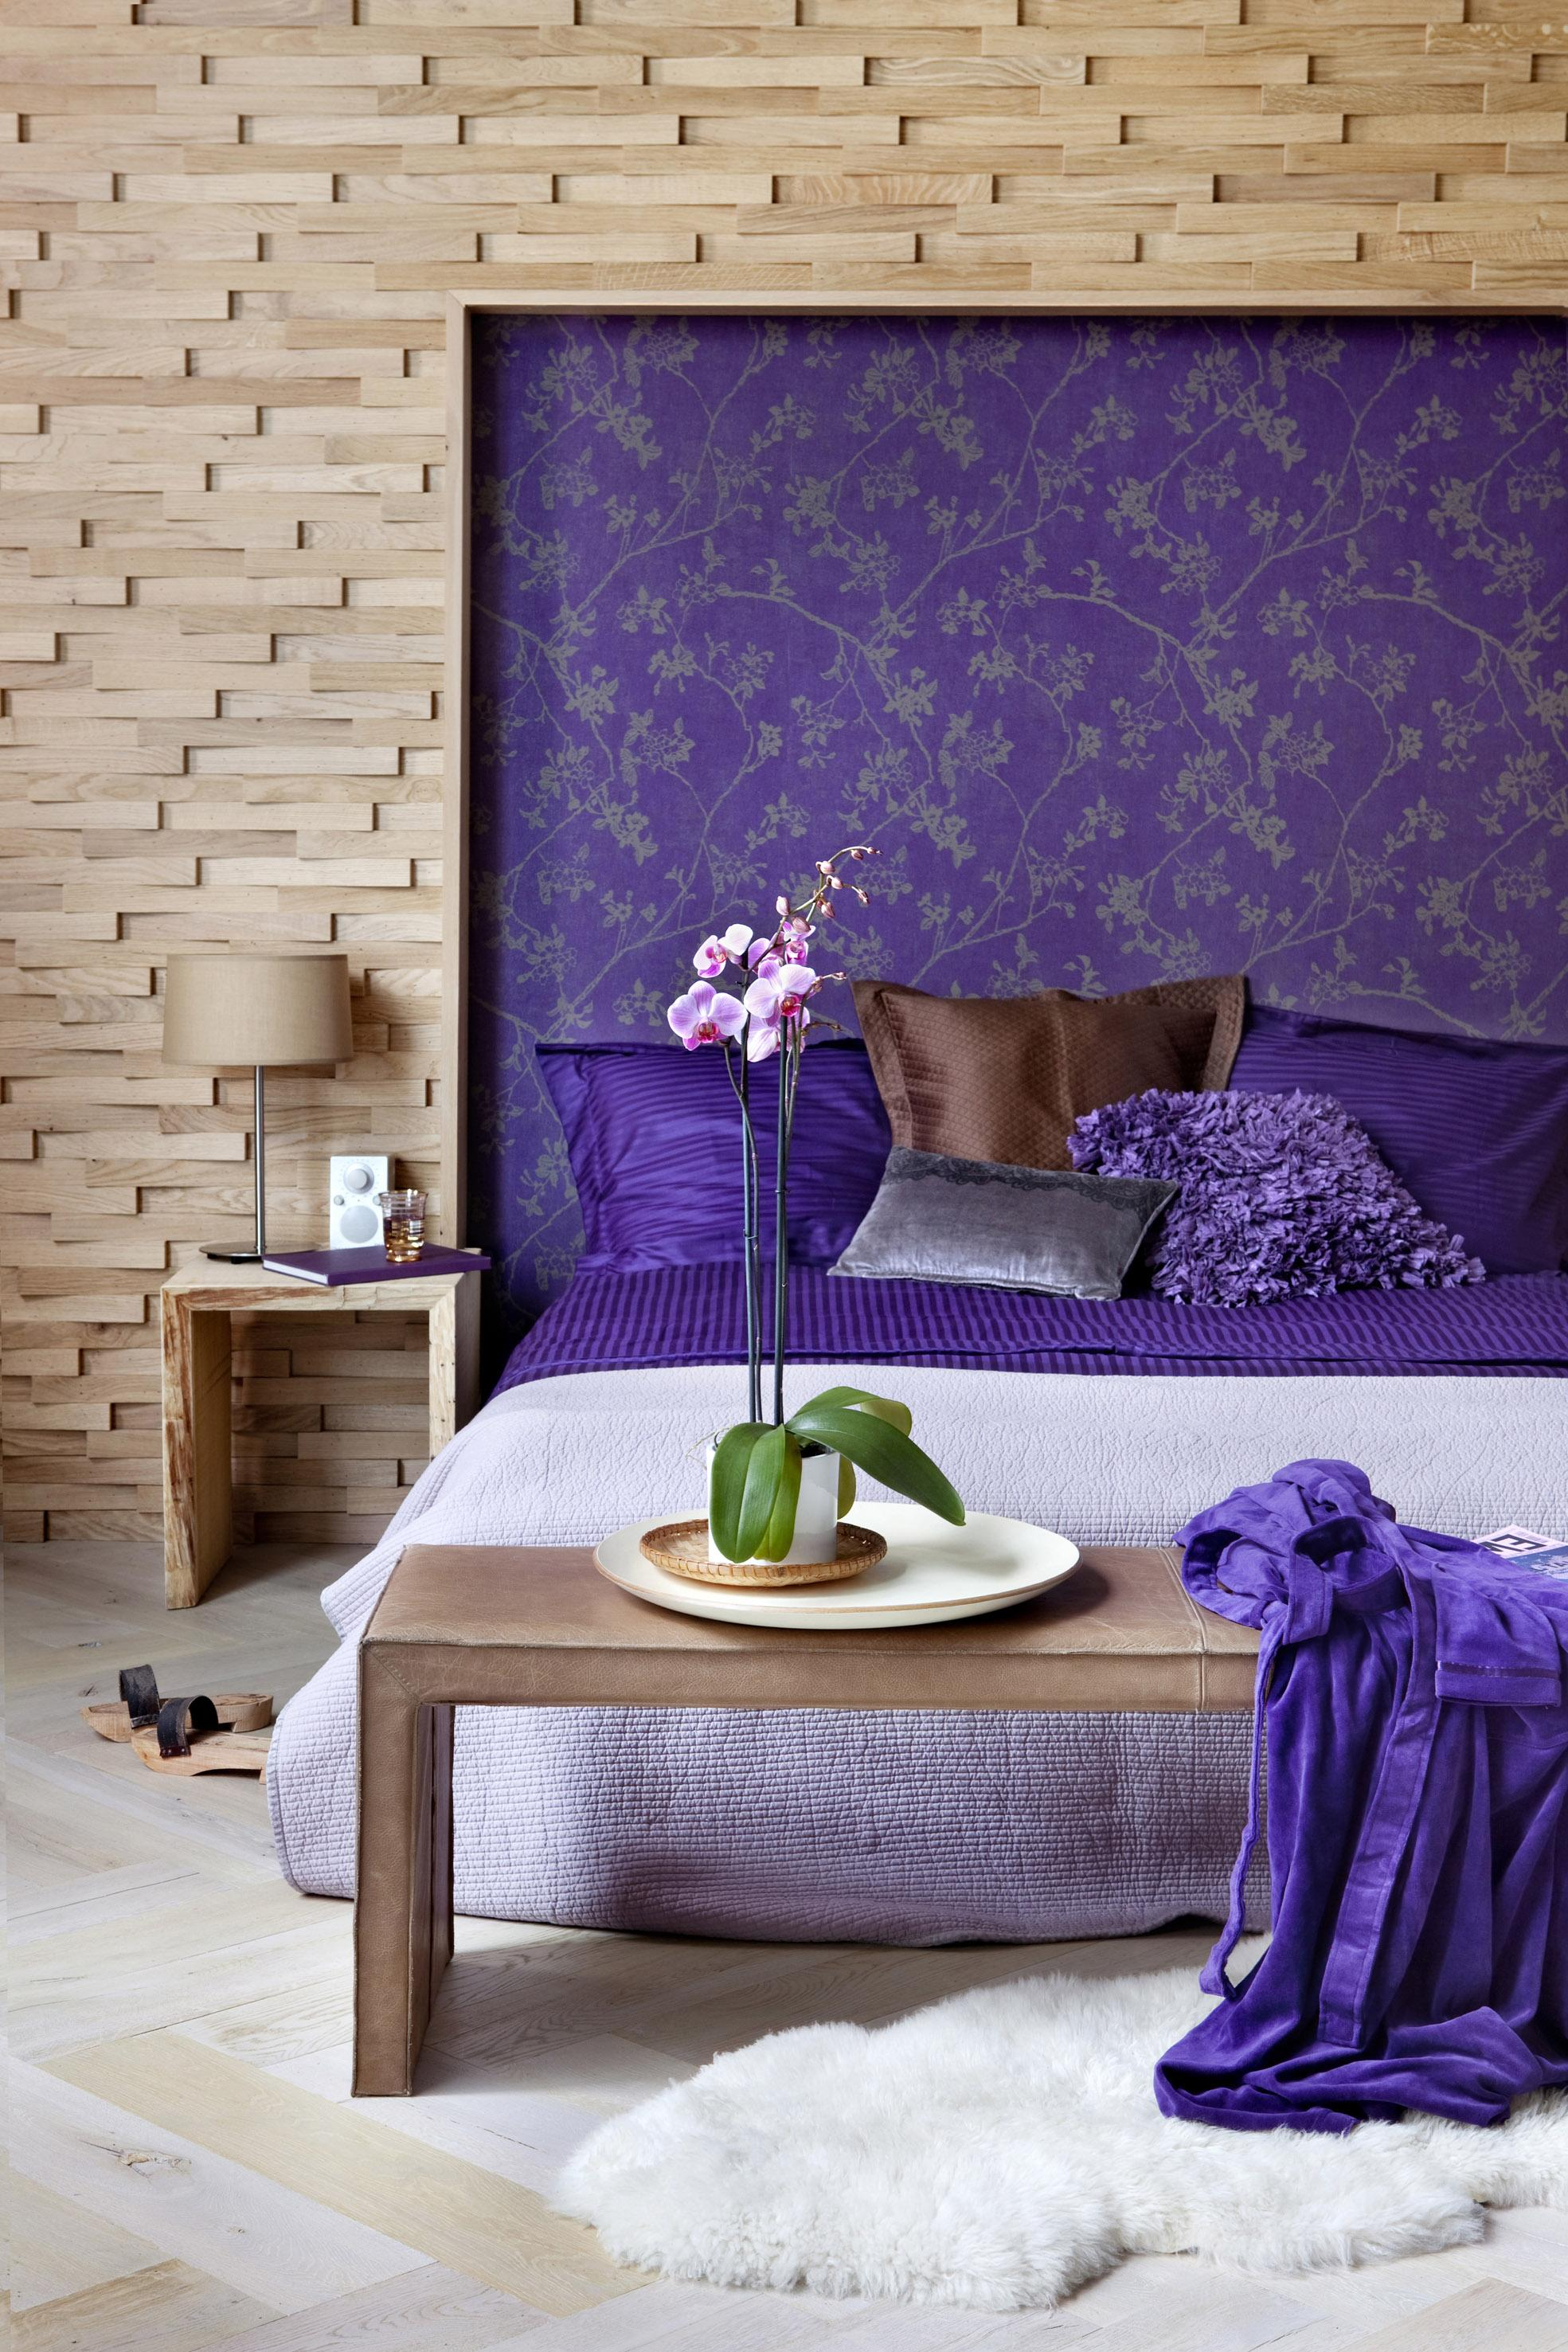 Lilafarbenes Betthaupt #betthaupt ©BN Wallcoverings